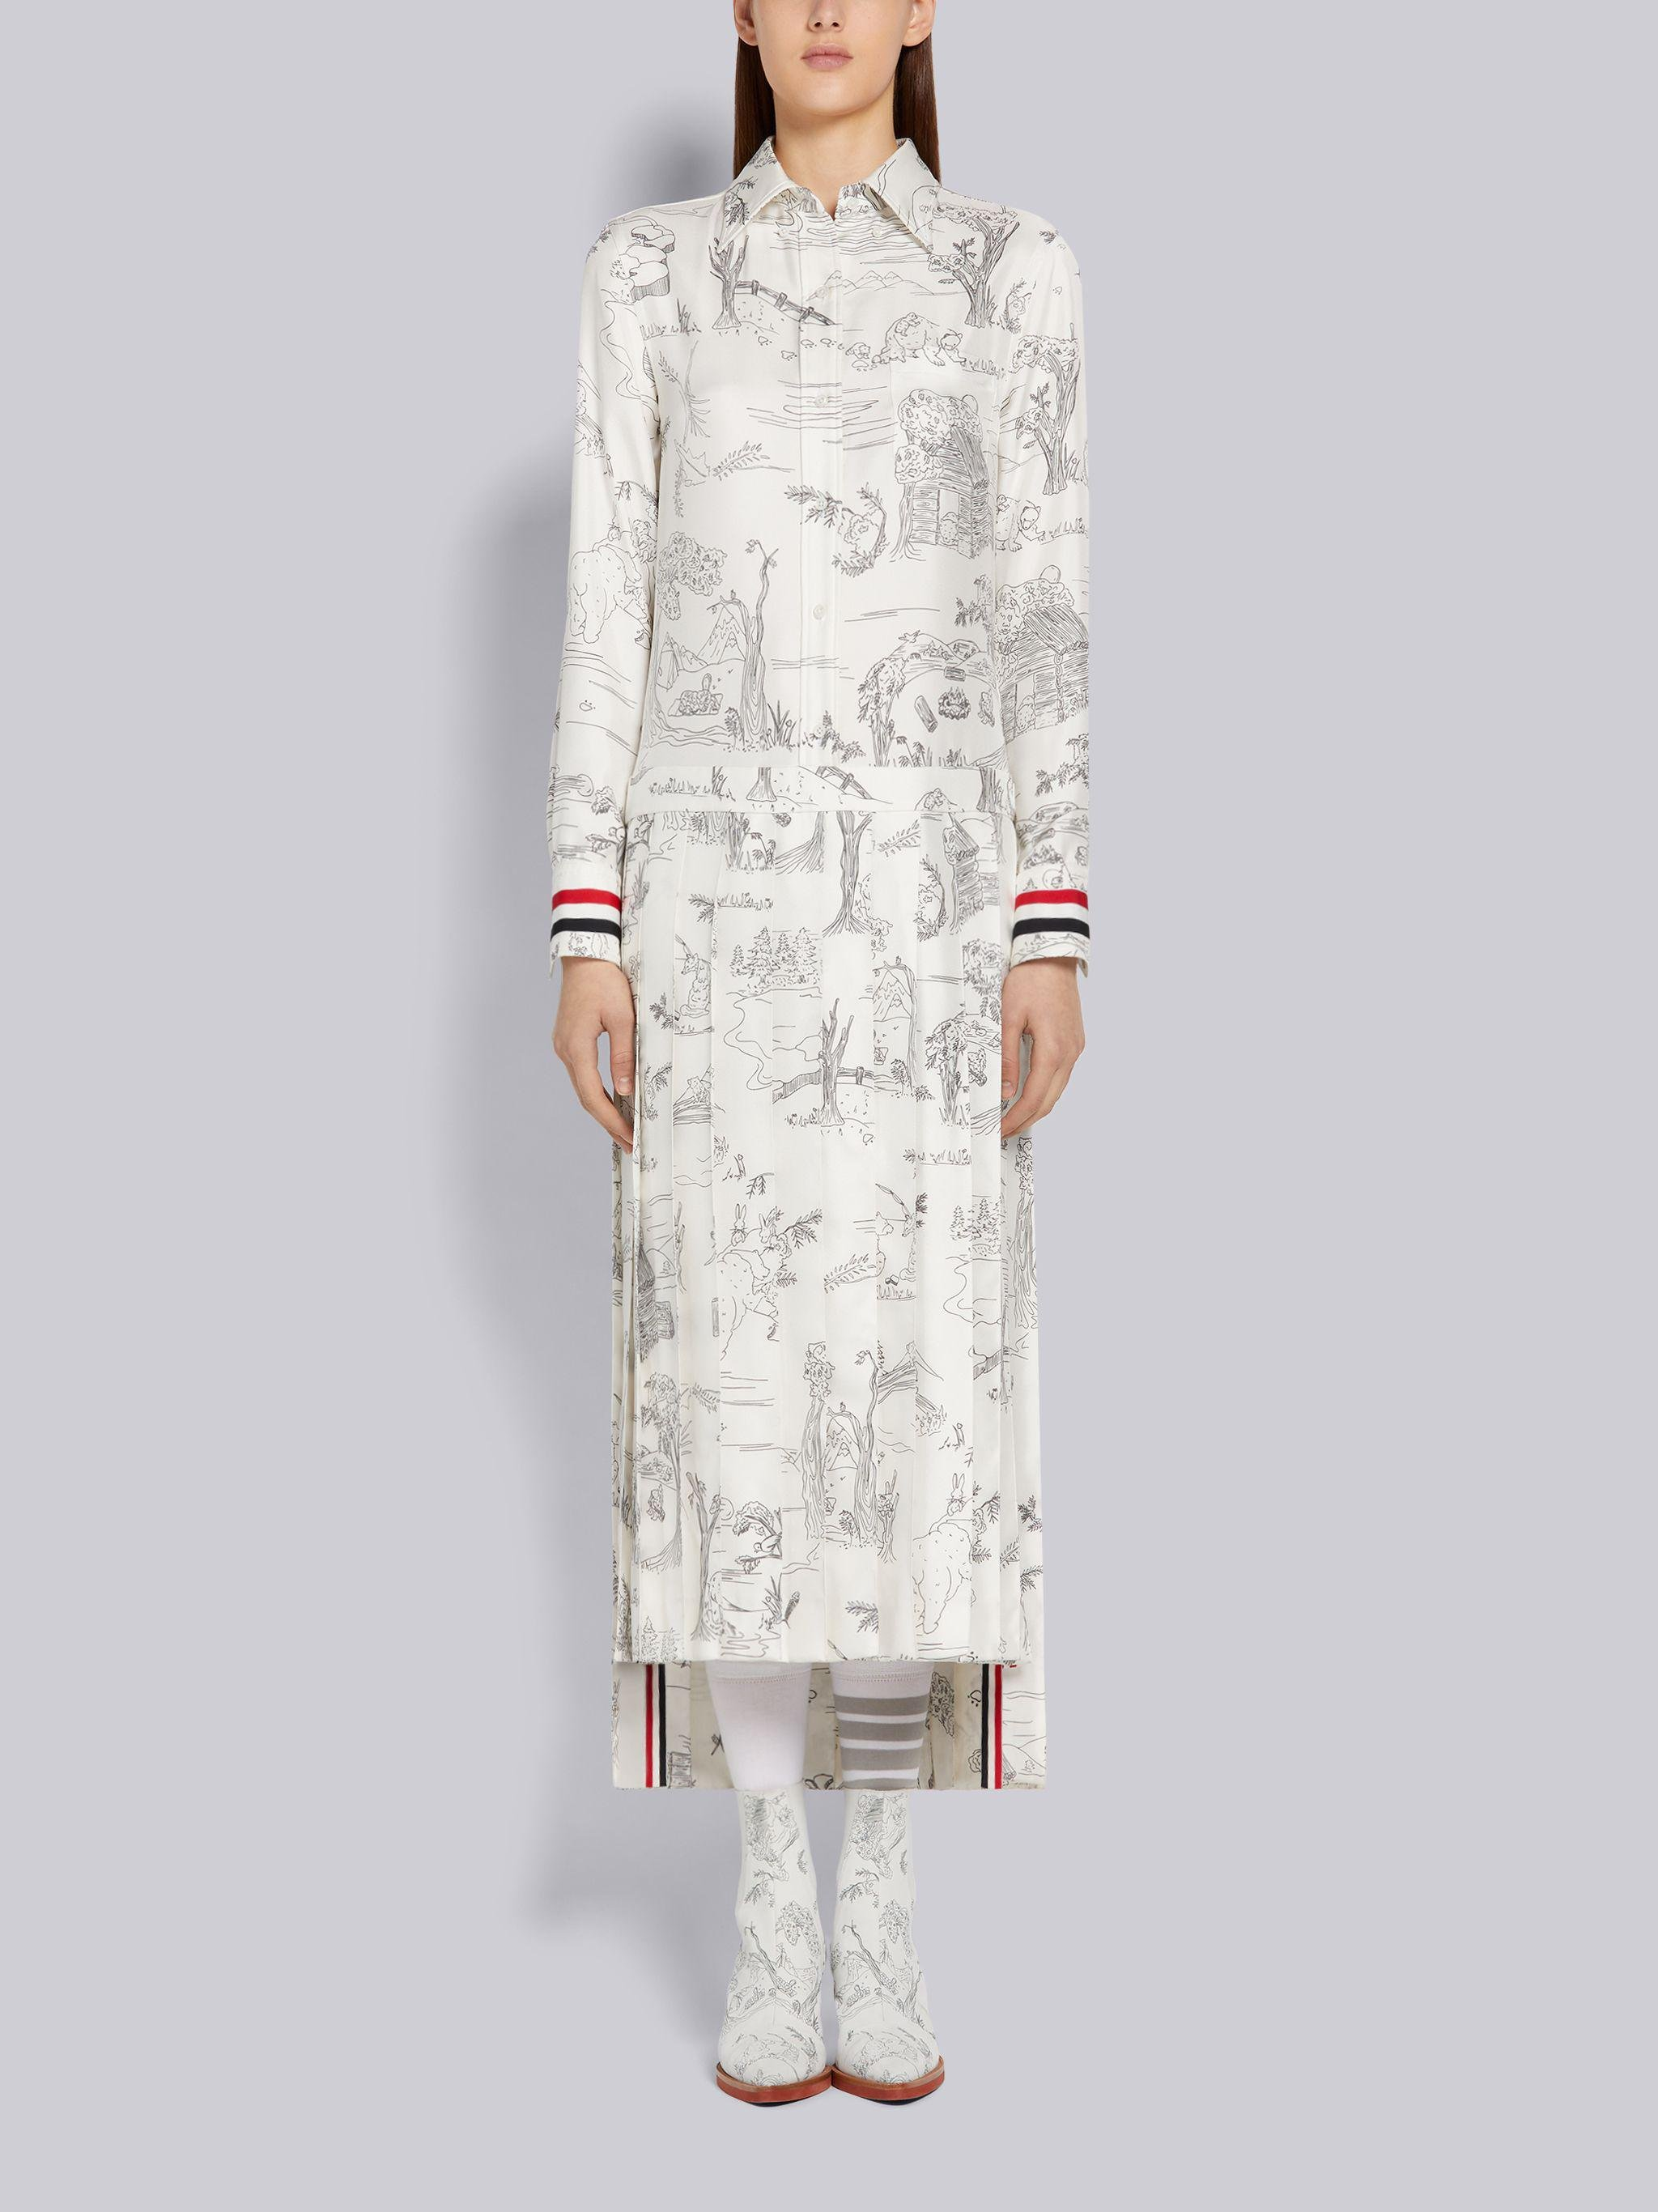 White Silk Twill Animal Camp Toile Grosgrain Cuff Dropped Back Pleated Bottom Below-the-Knee Shirtdress